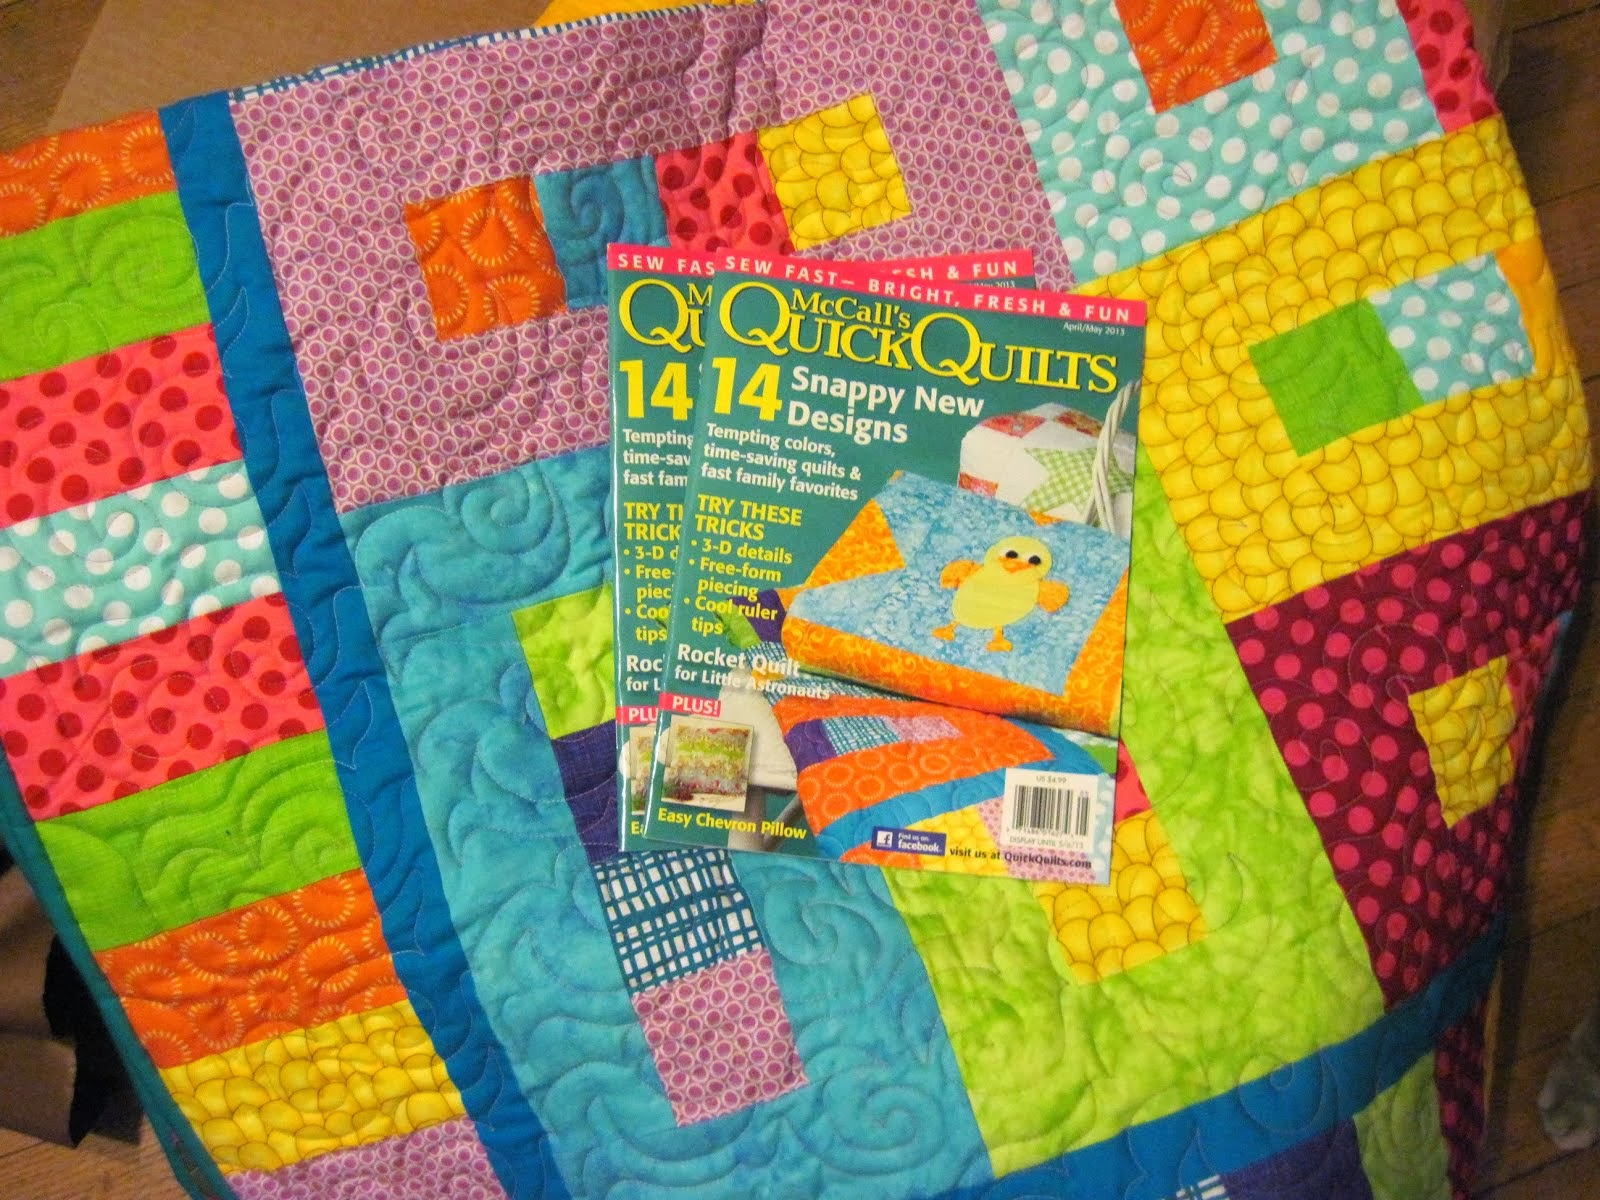 McCalls Quick Quilts publication 2013